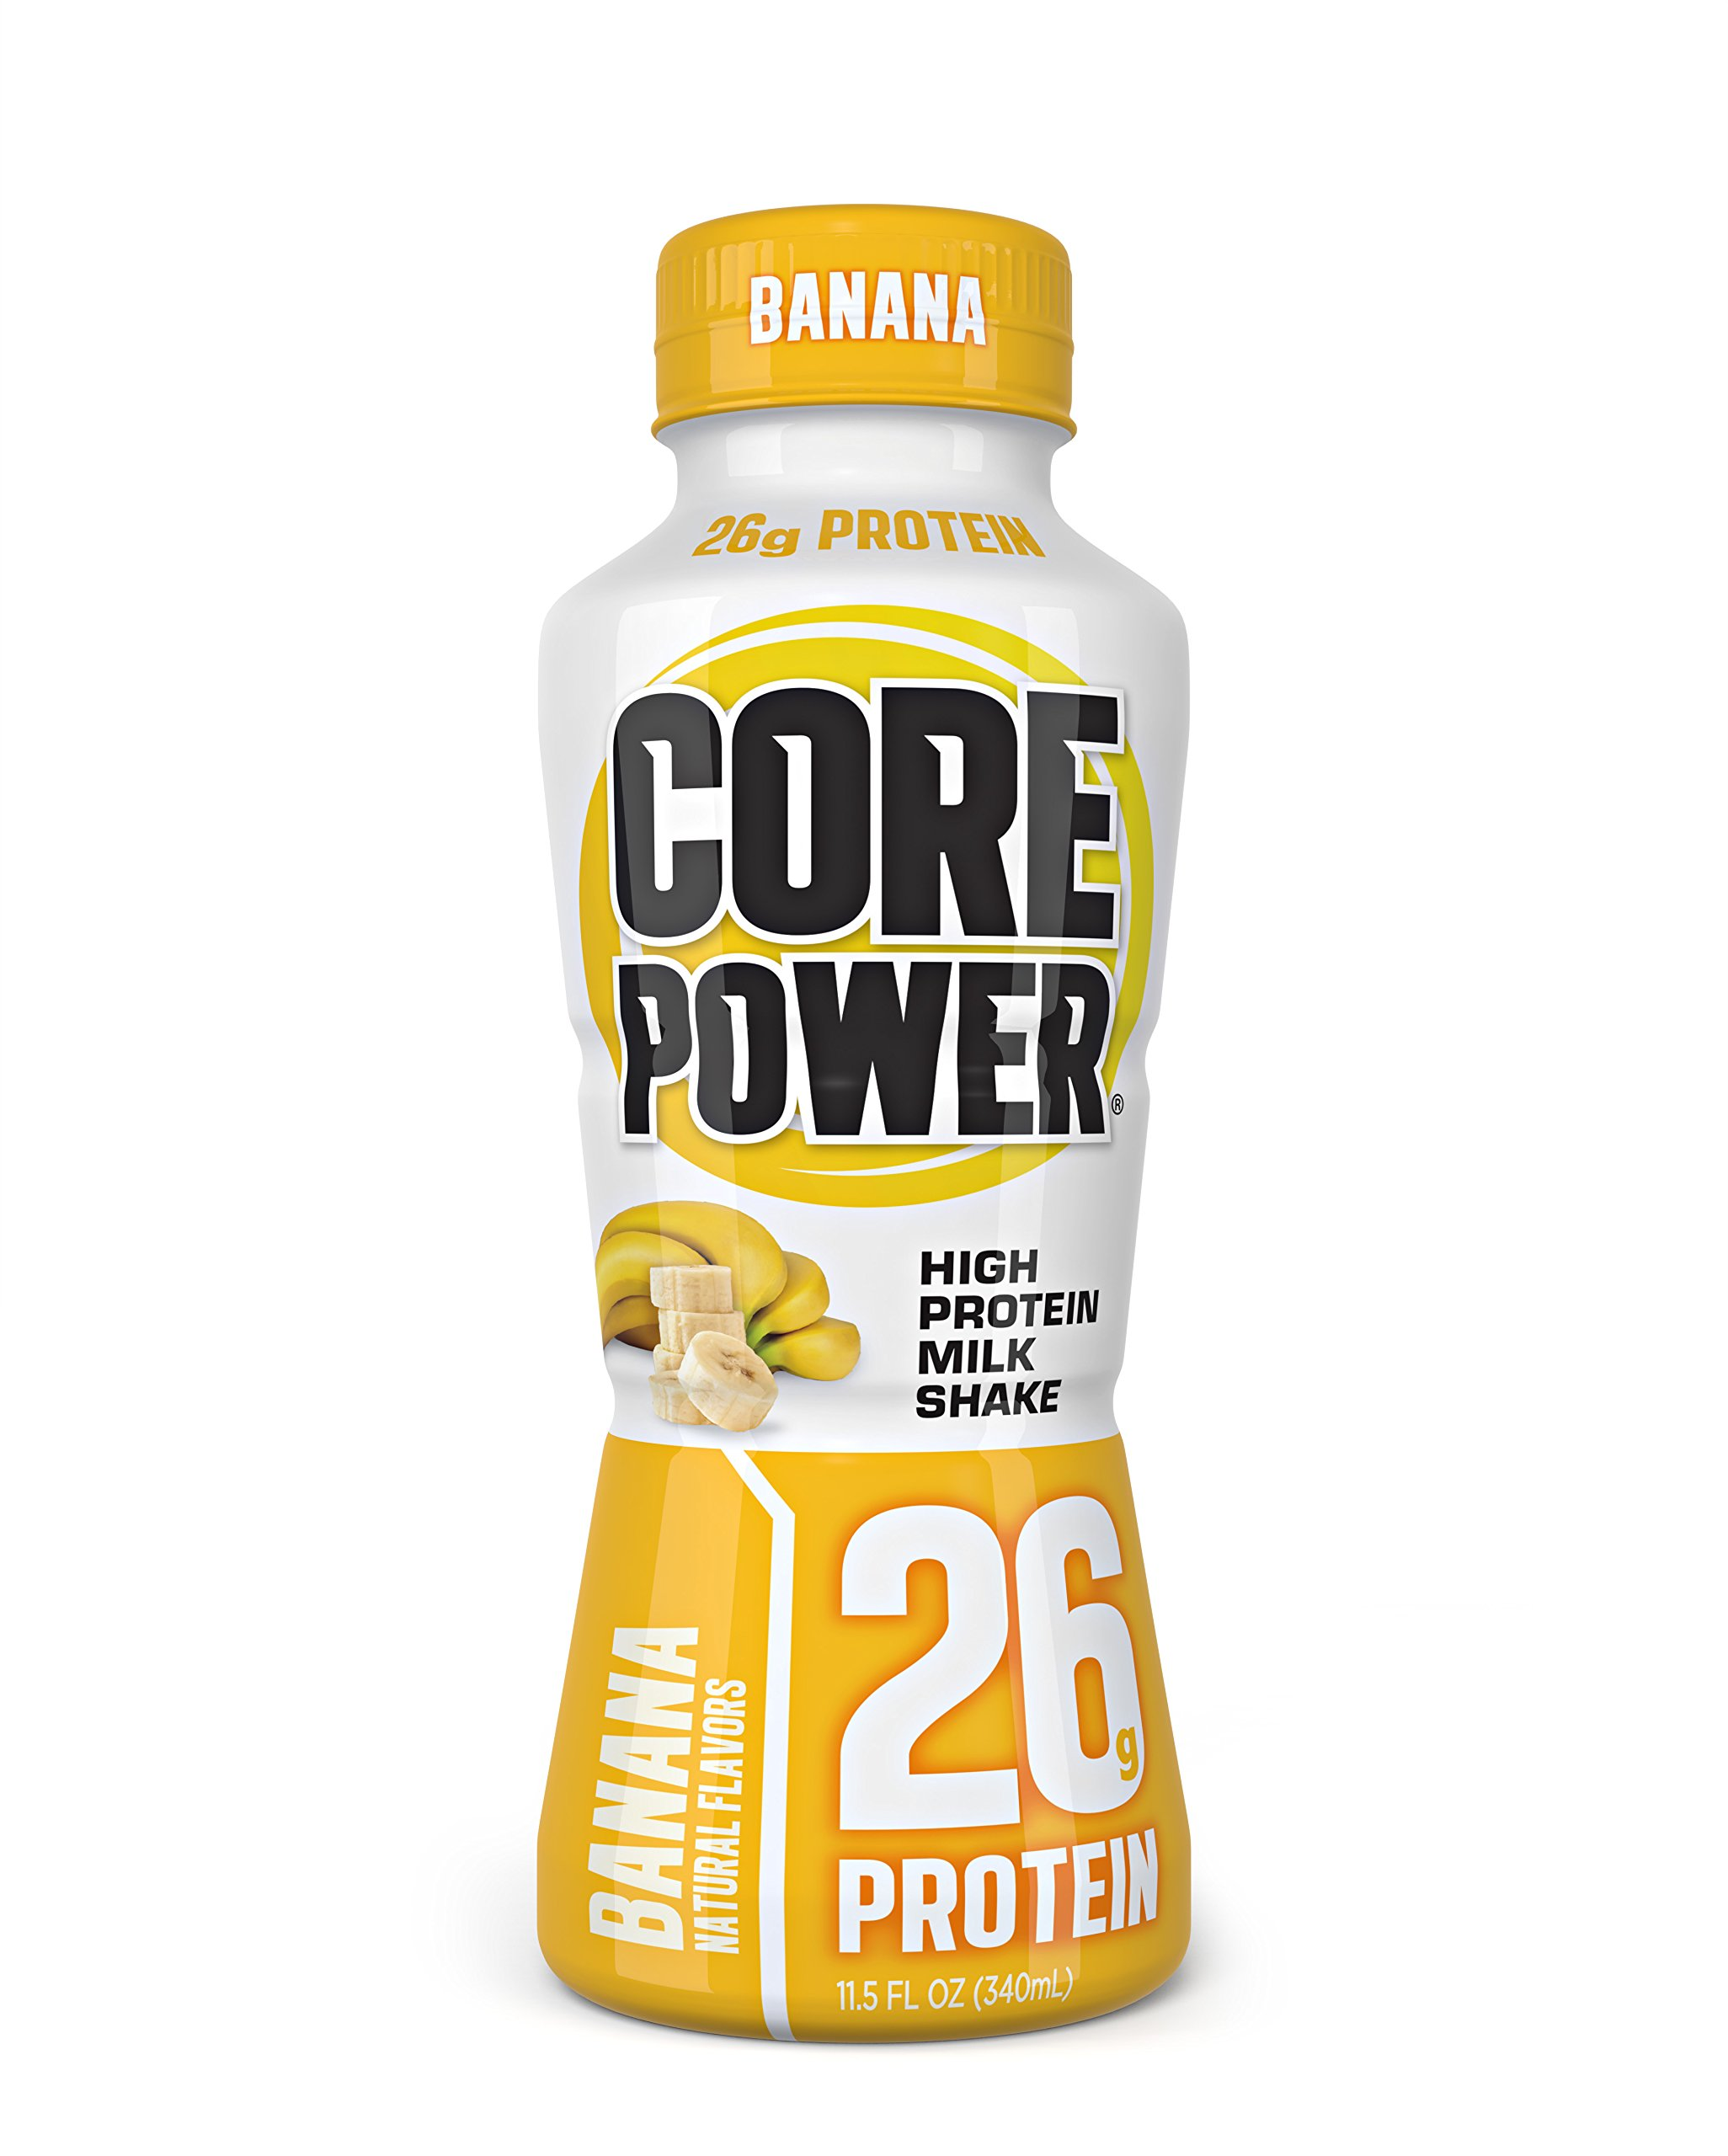 Core Power by fairlife High Protein (26g) Milk Shake, Banana, 11.5 Fluid Ounce, 12 Count